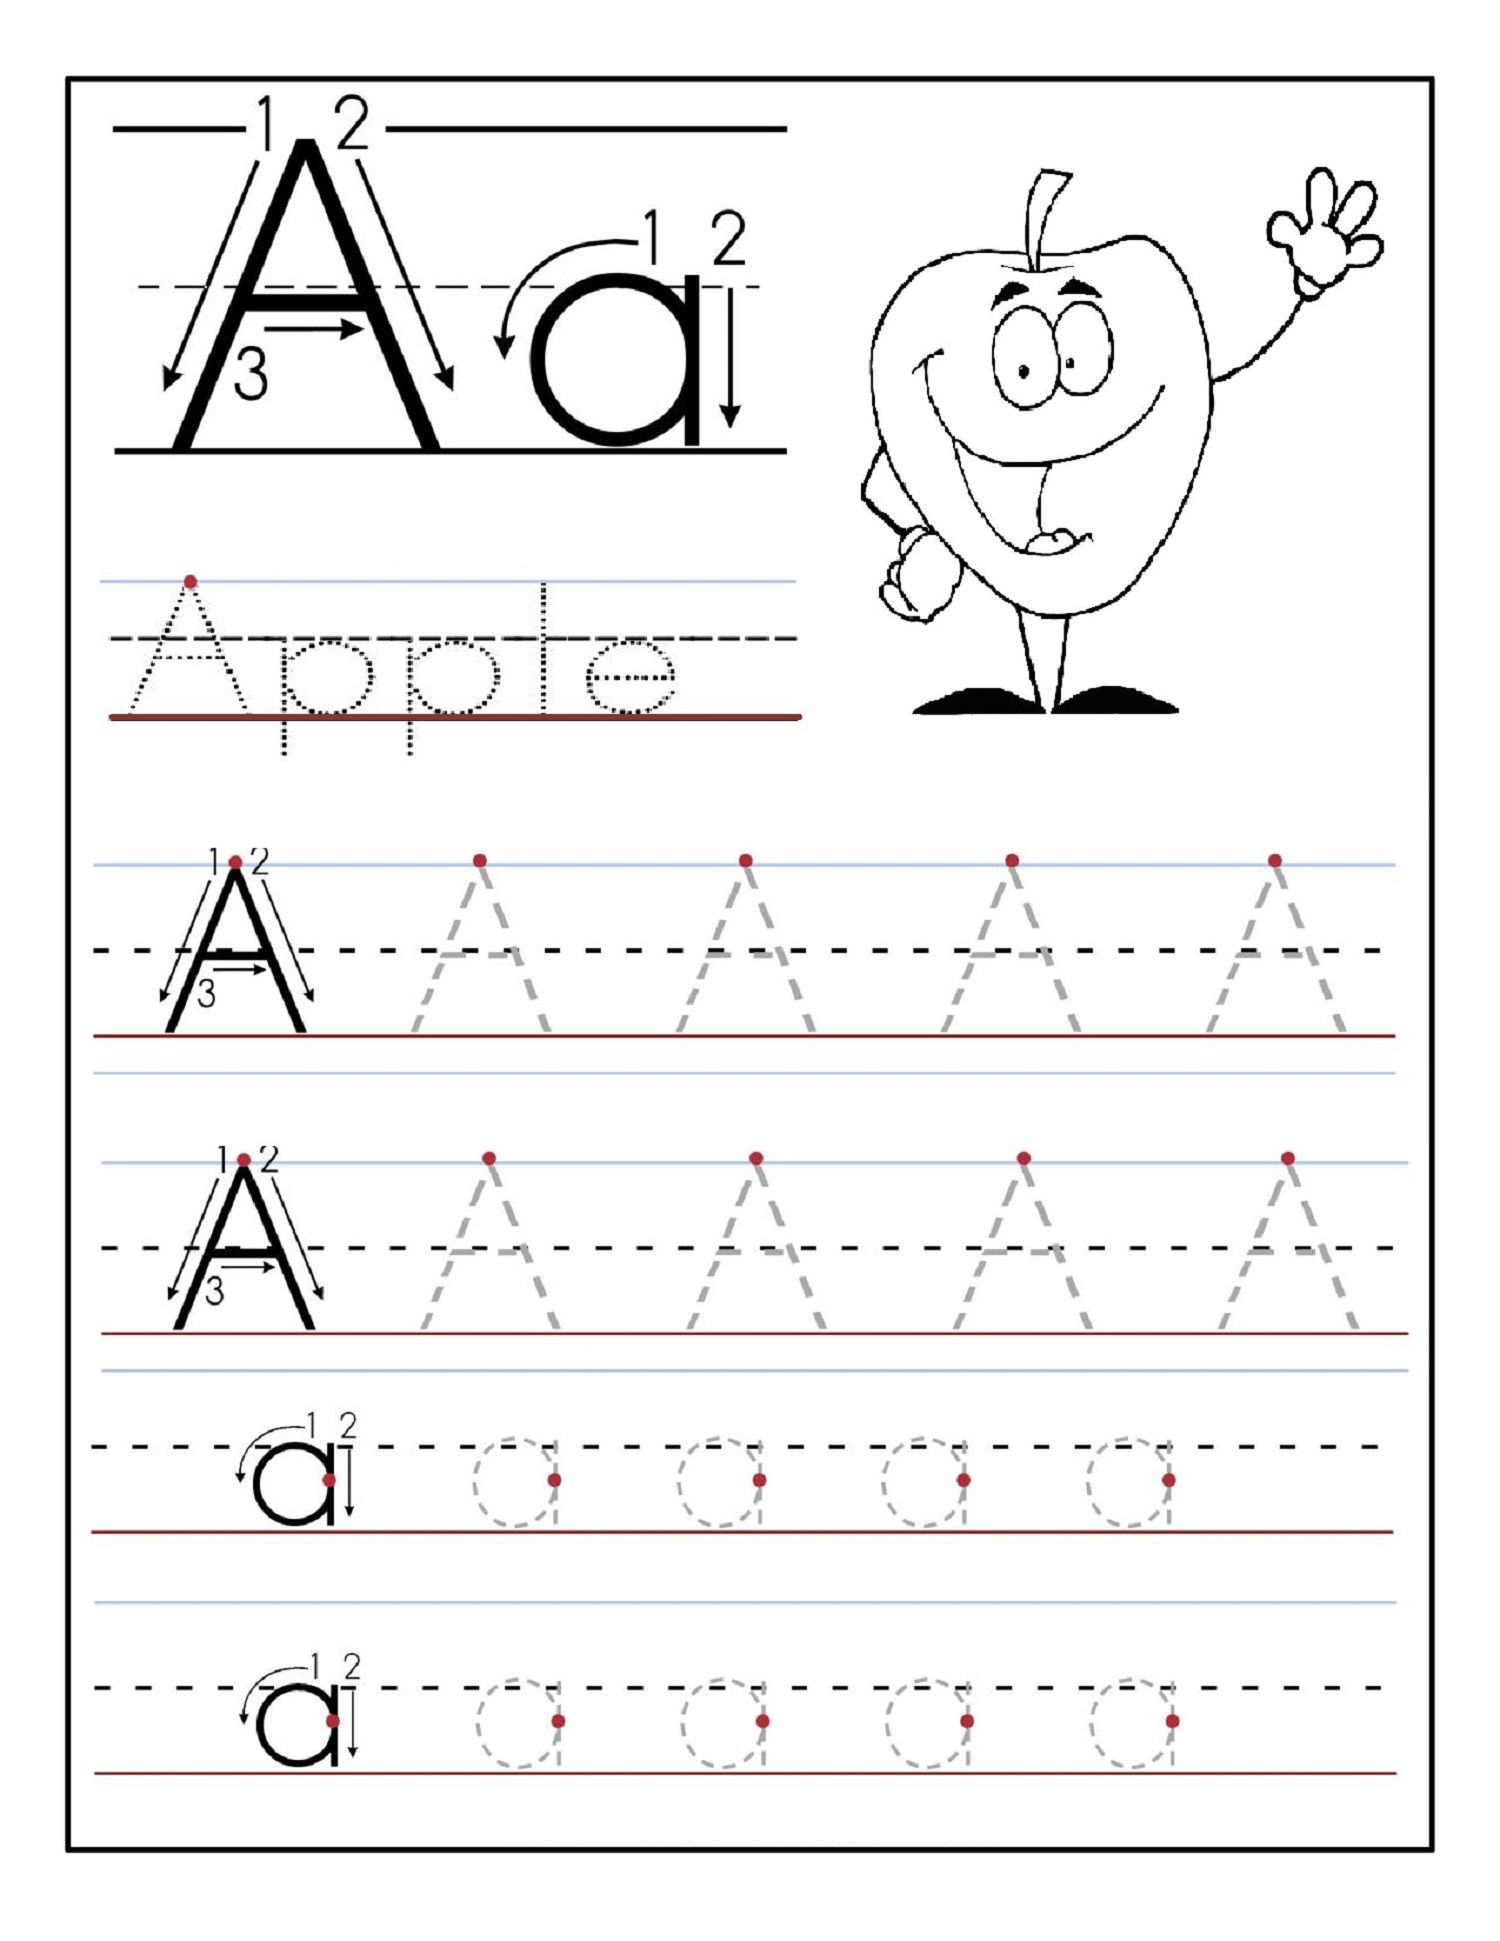 Tracing The Letter A For First Writing Learning | Dear Joya | Kids ...